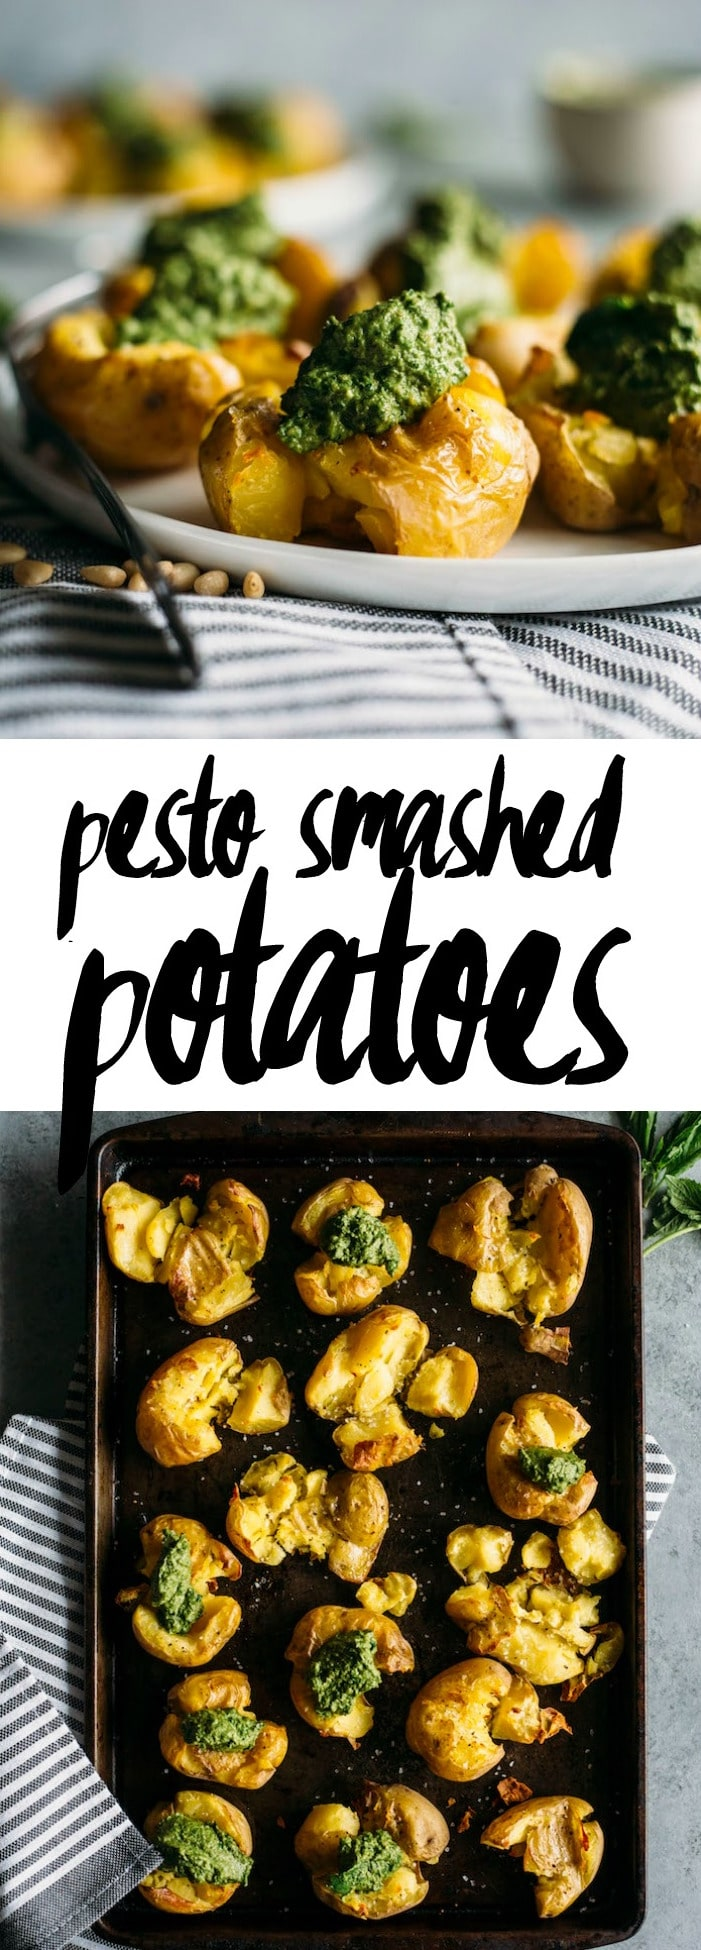 Pesto Smashed Potatoes | CRISPY smashed potatoes topped with healthy kale pesto, aka the perfect side dish | thealmondeater.com